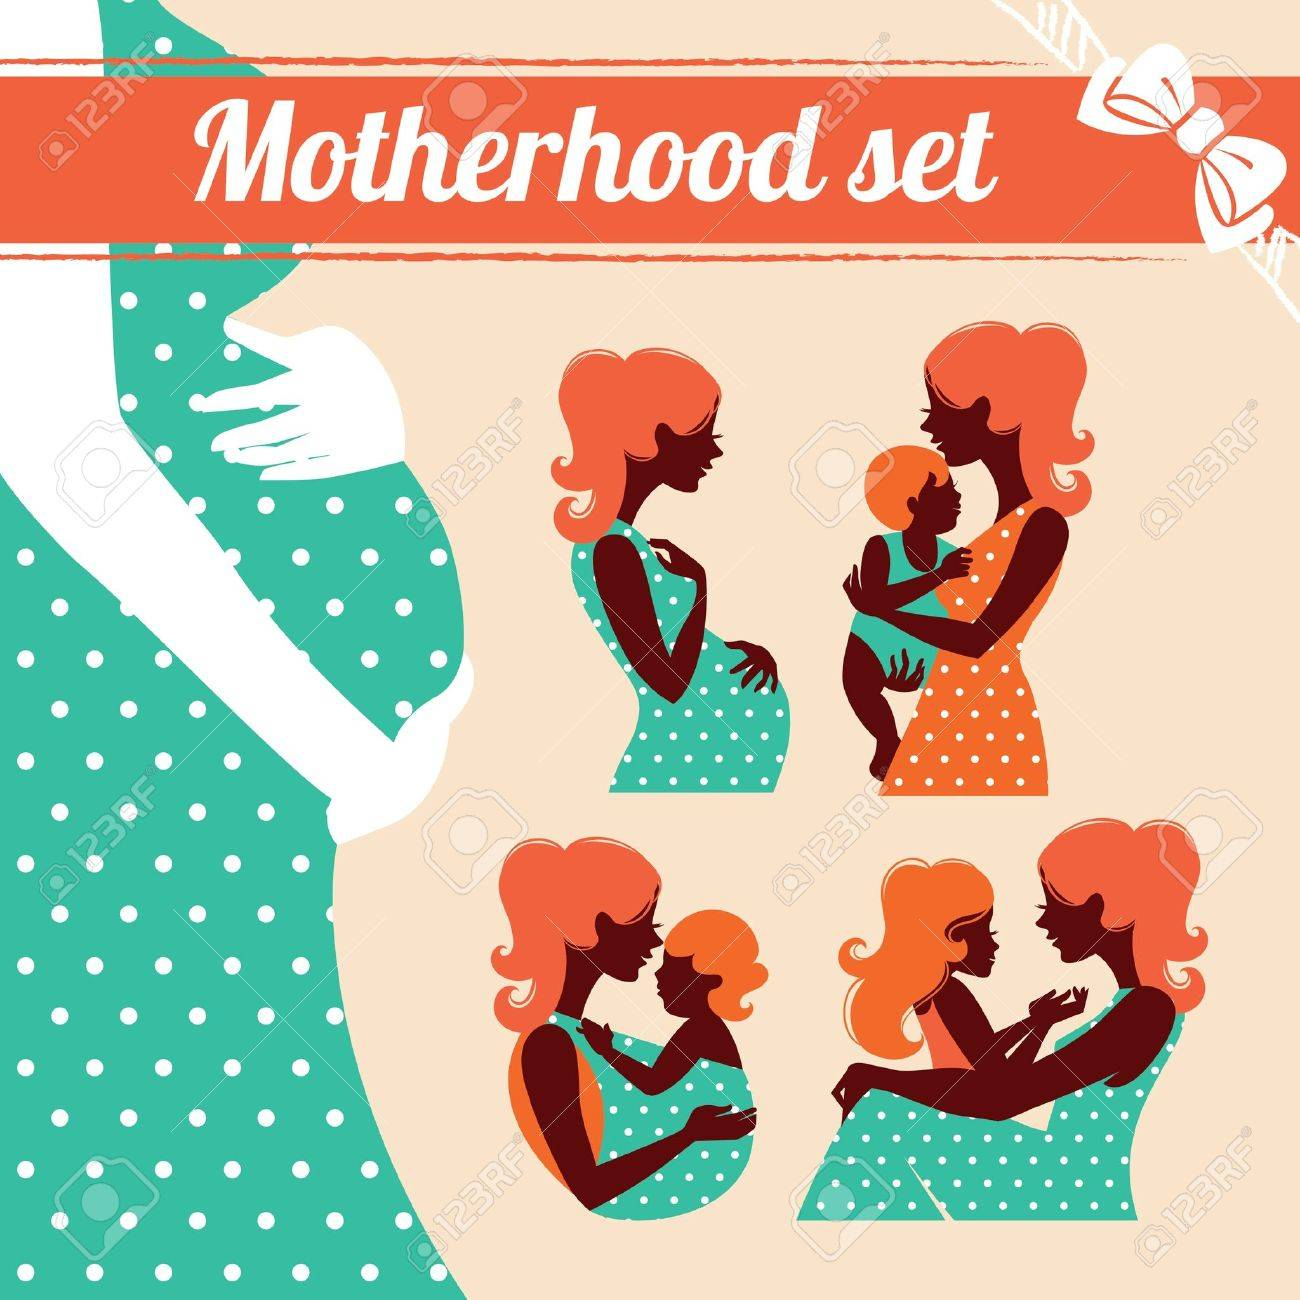 Motherhood set. Silhouettes of mother and baby Stock Vector - 18435920